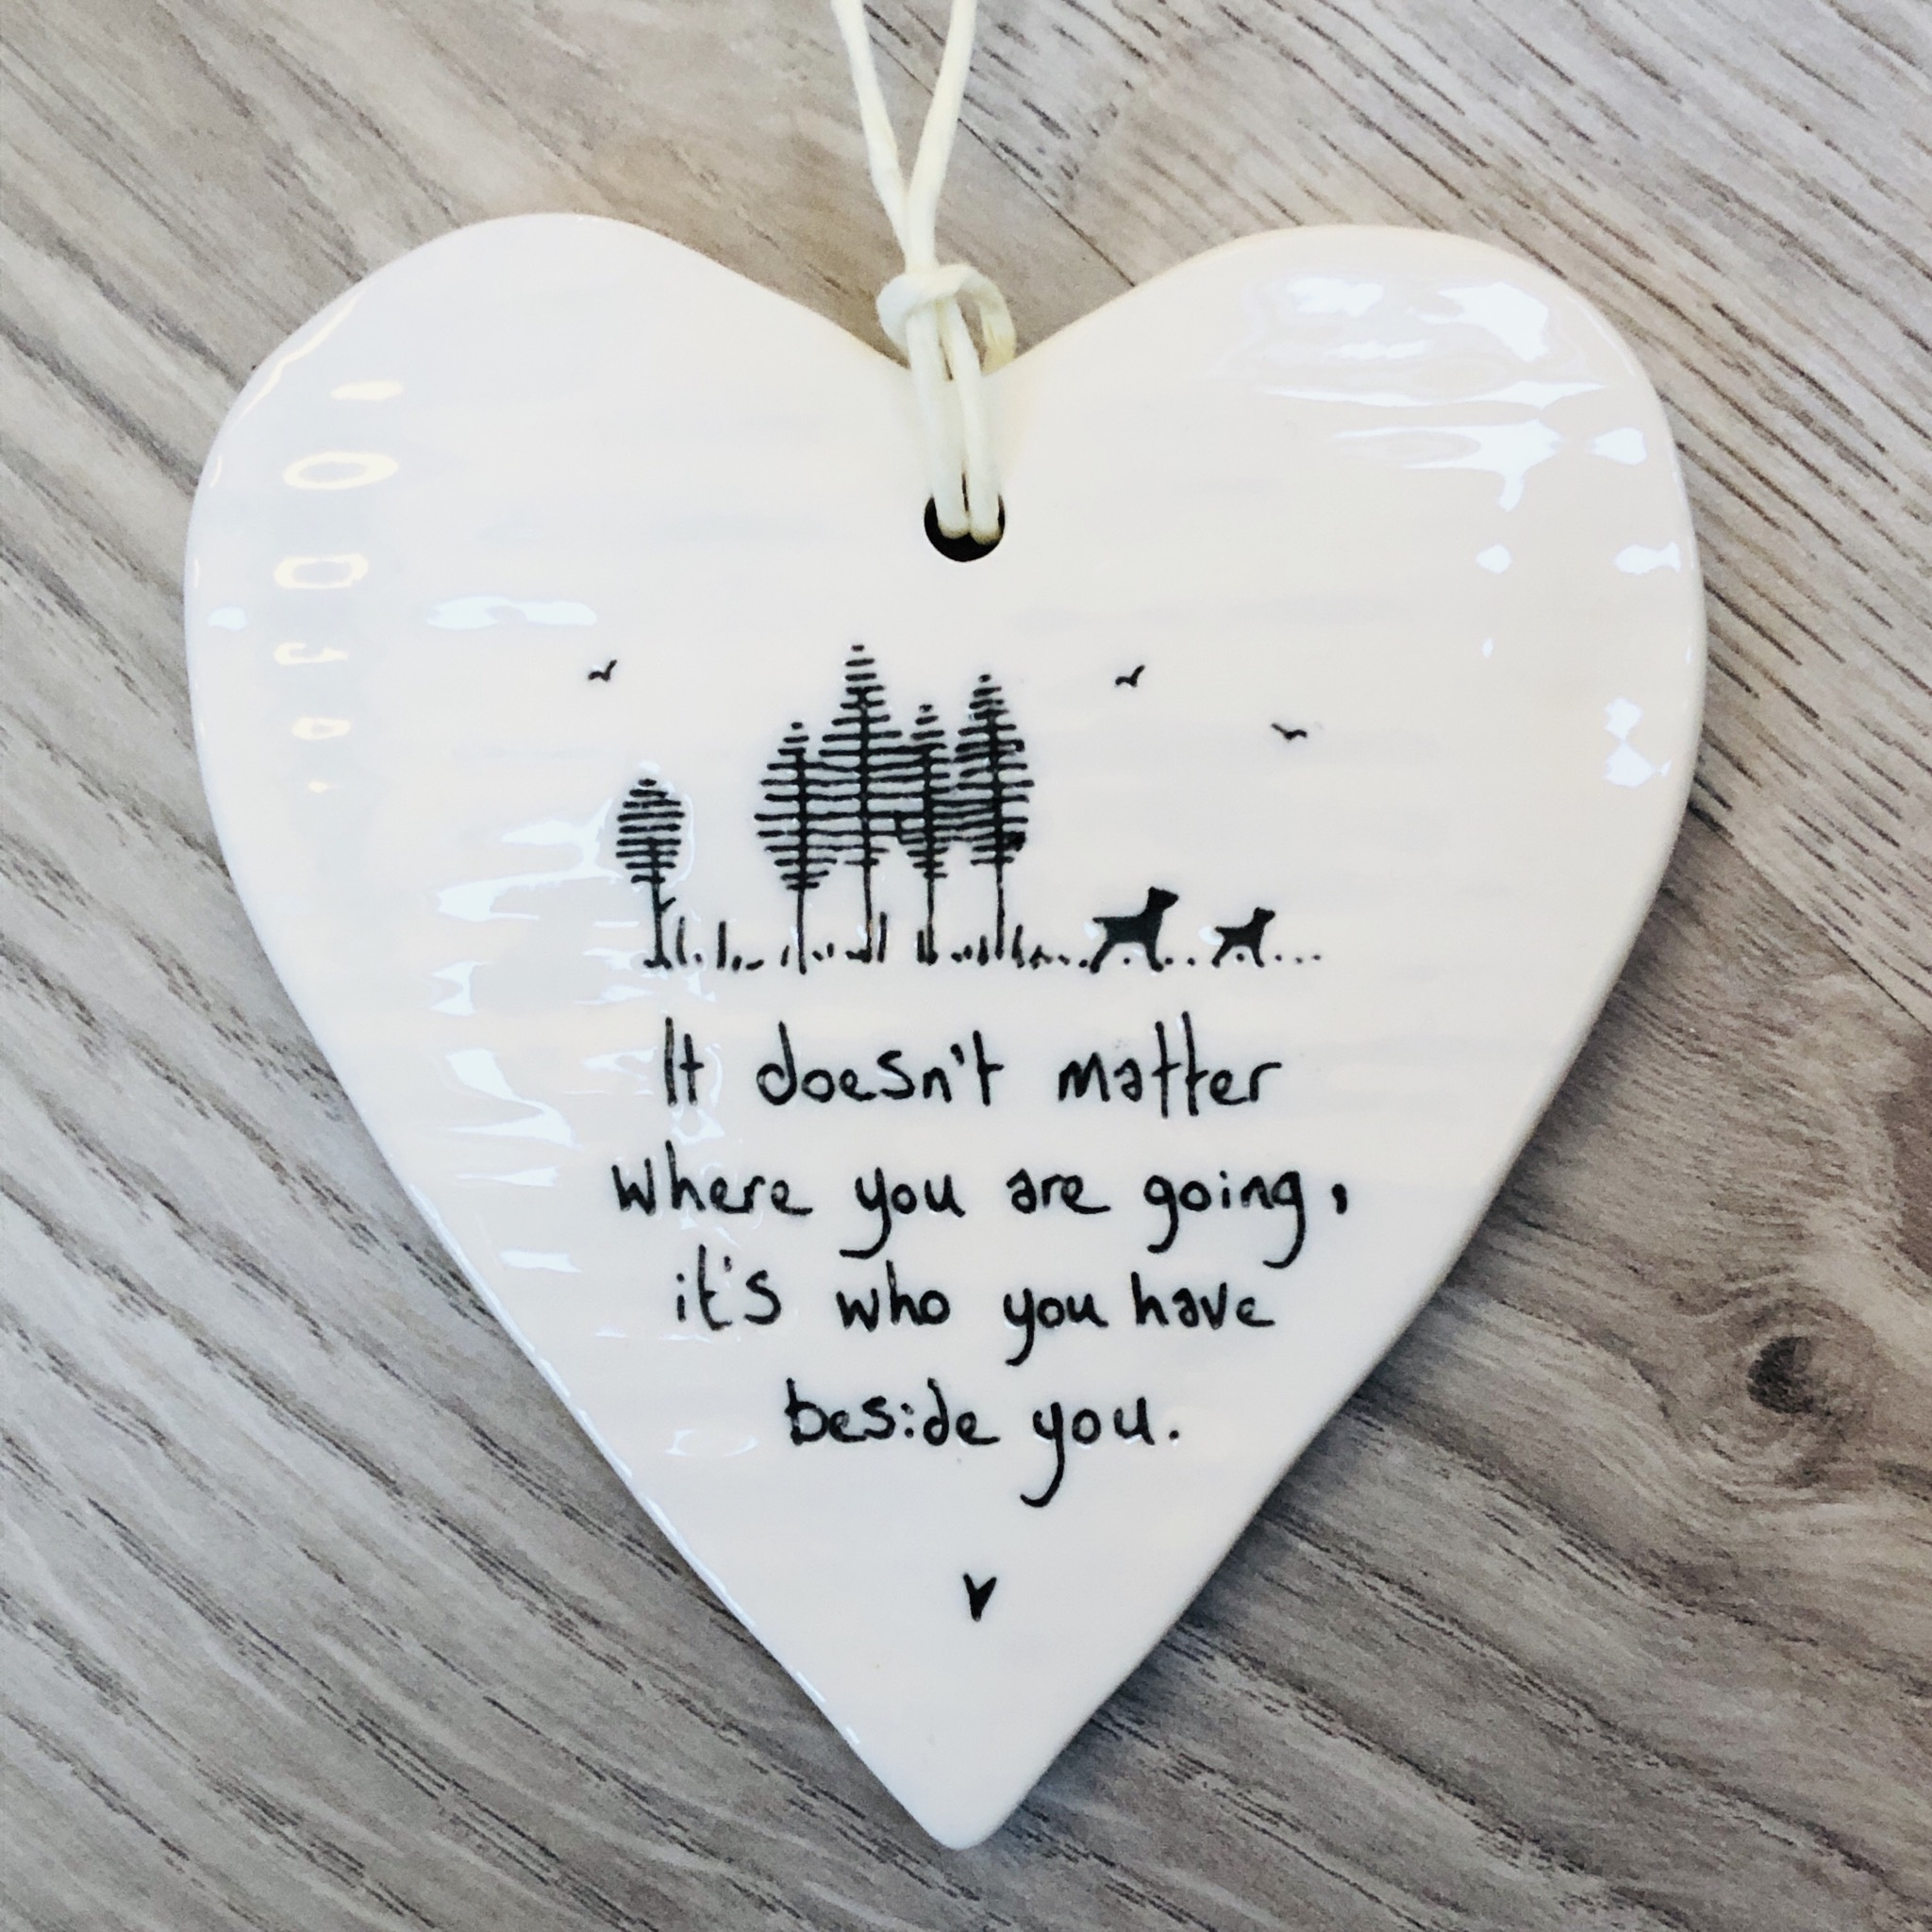 East of India porcelain hanging heart. It doesn't matter where you are going, it's who you have beside you